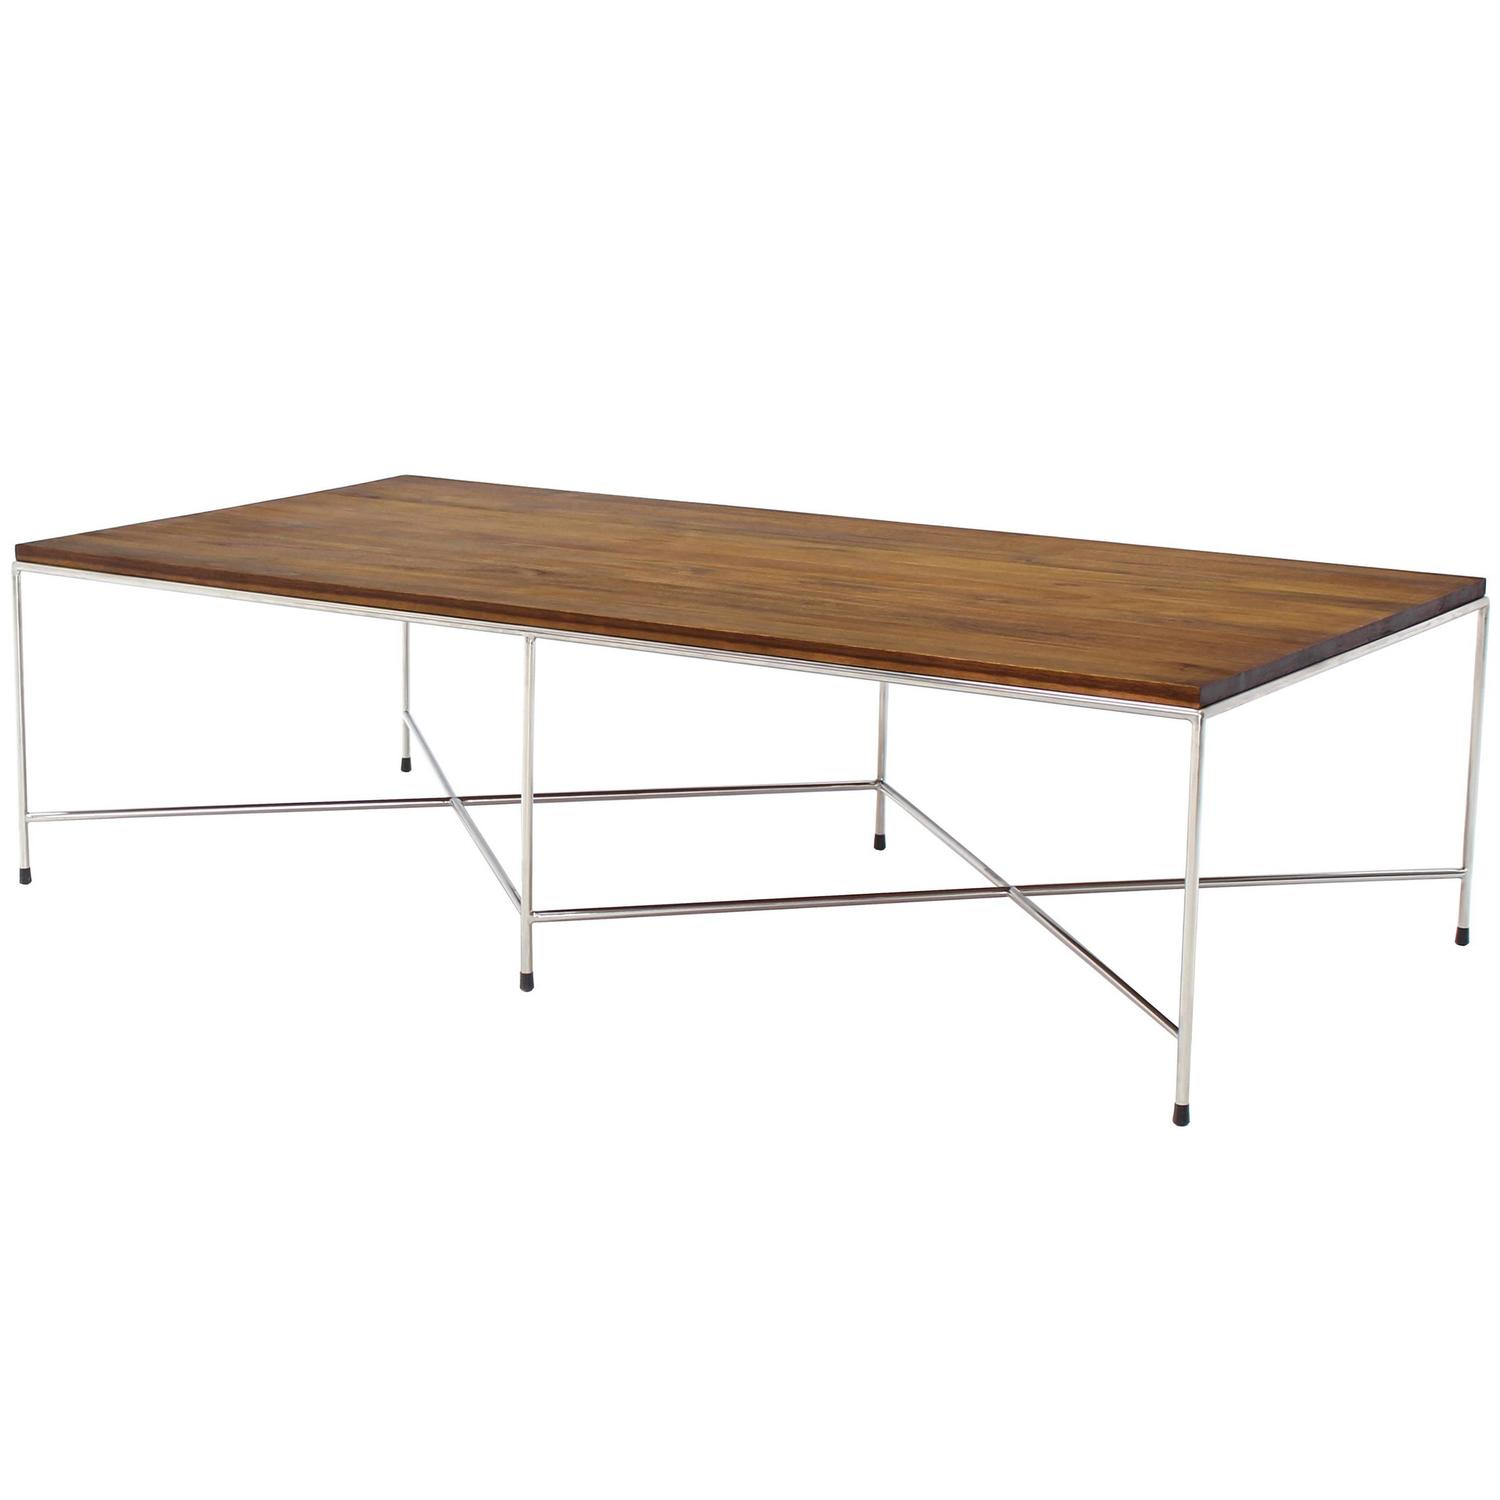 Double X Base Solid Top Chrome Base Coffee Table For Sale At 1stdibs